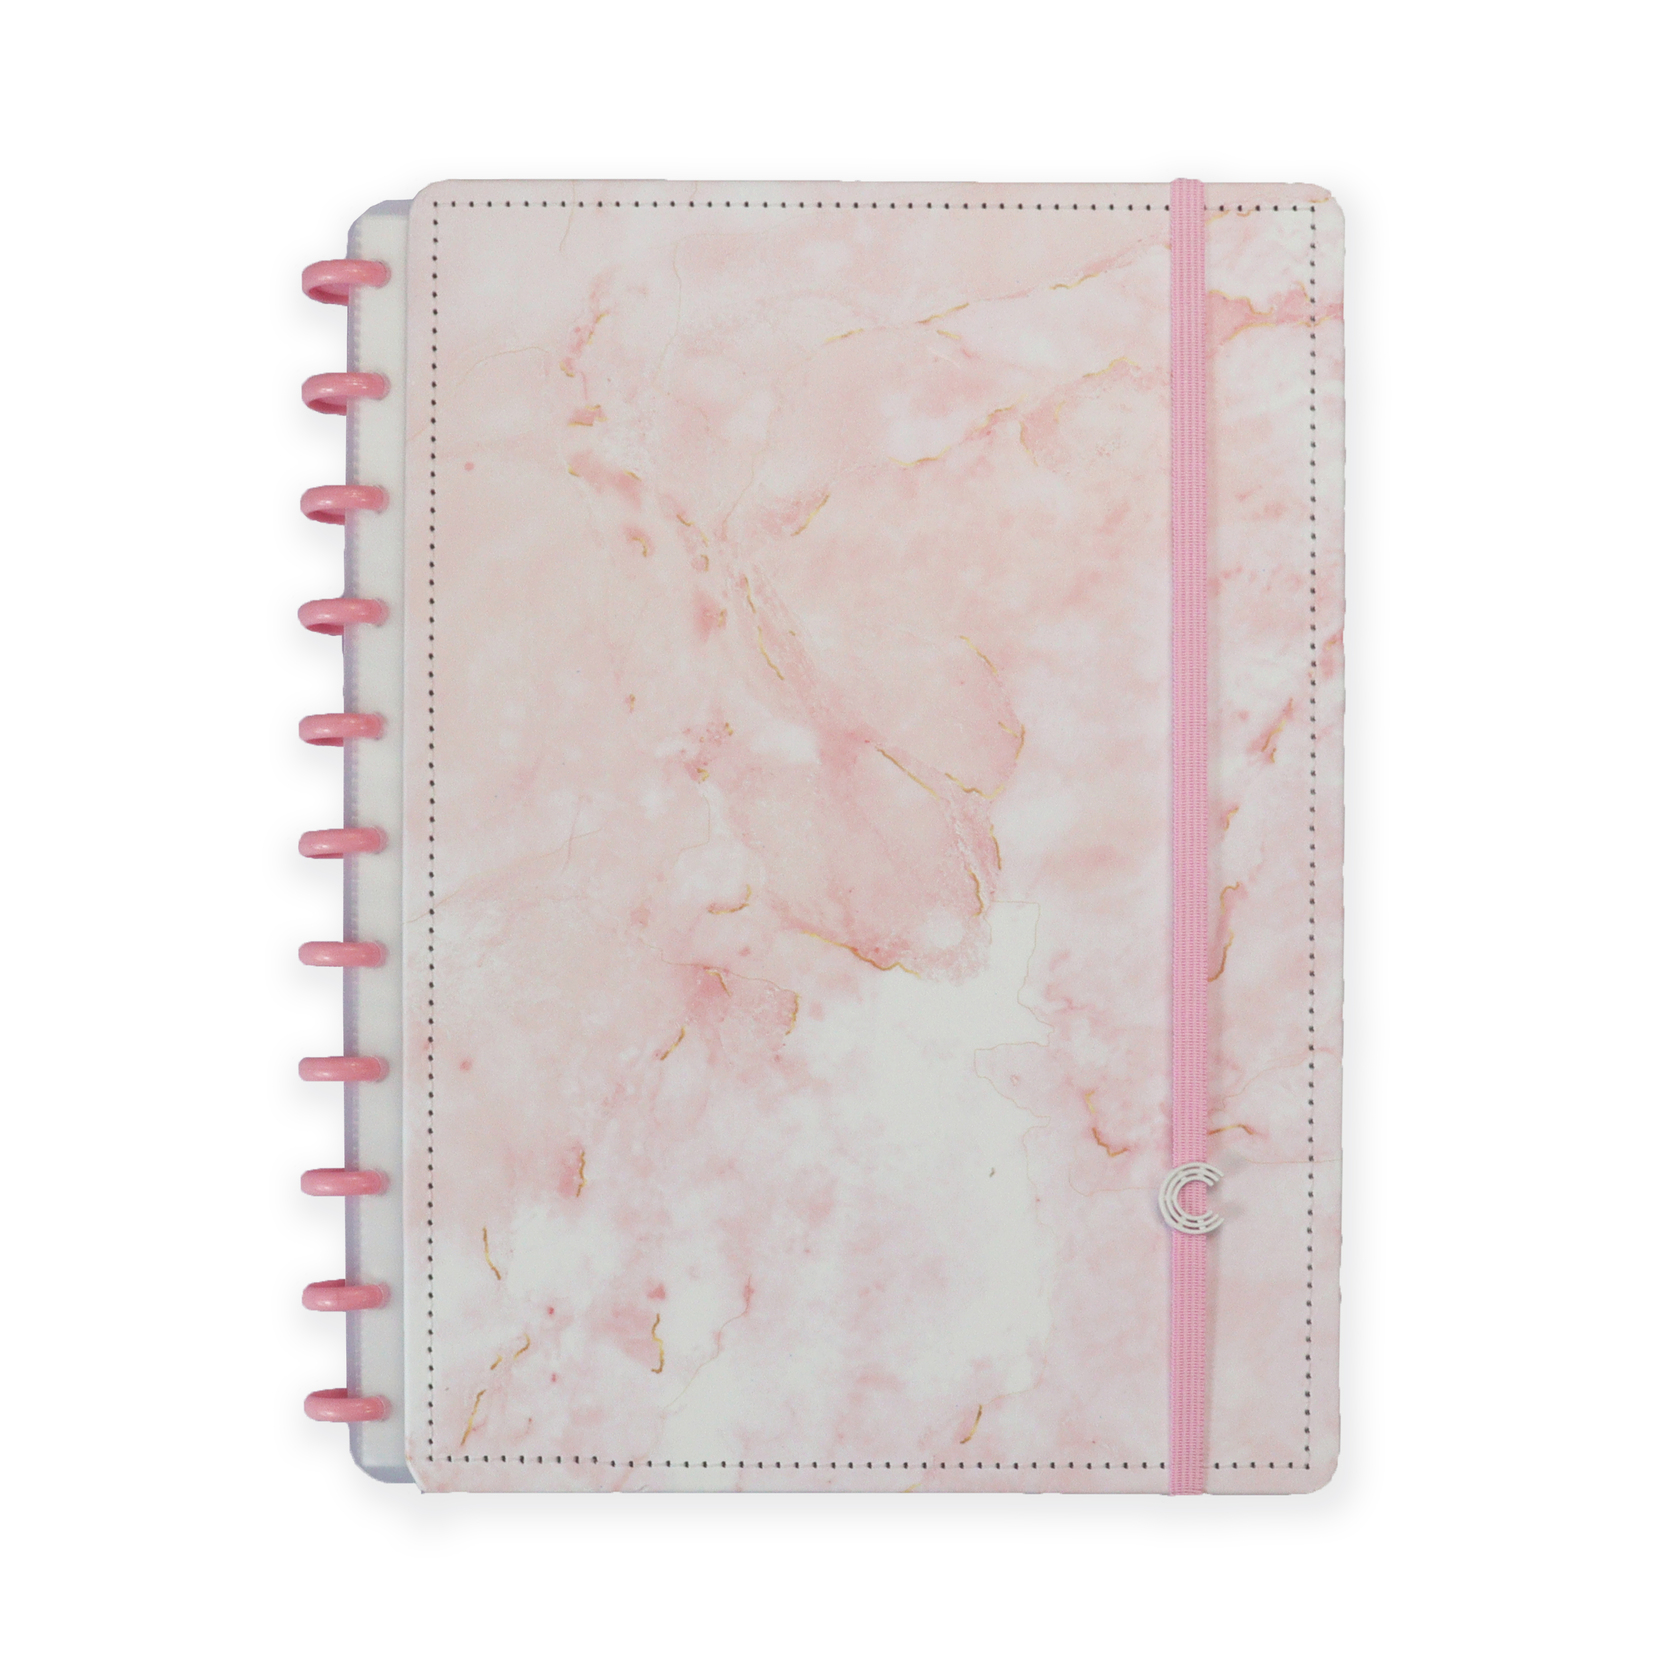 Caderno A4 Pink Marble Dream By Owhana